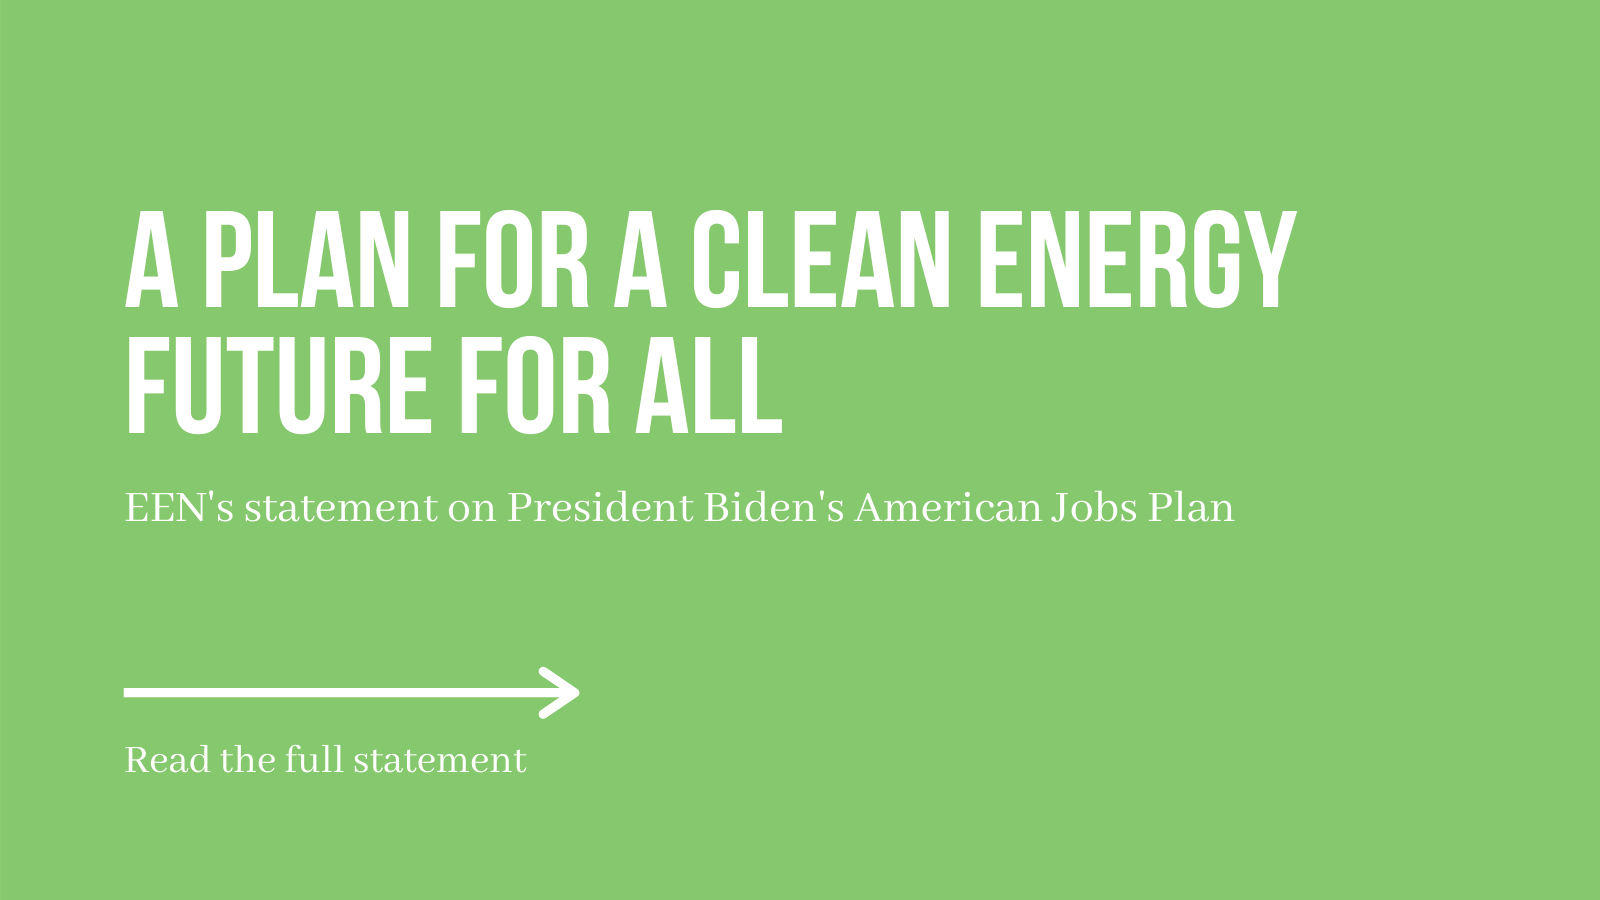 A Plan For a Clean Energy Future For All